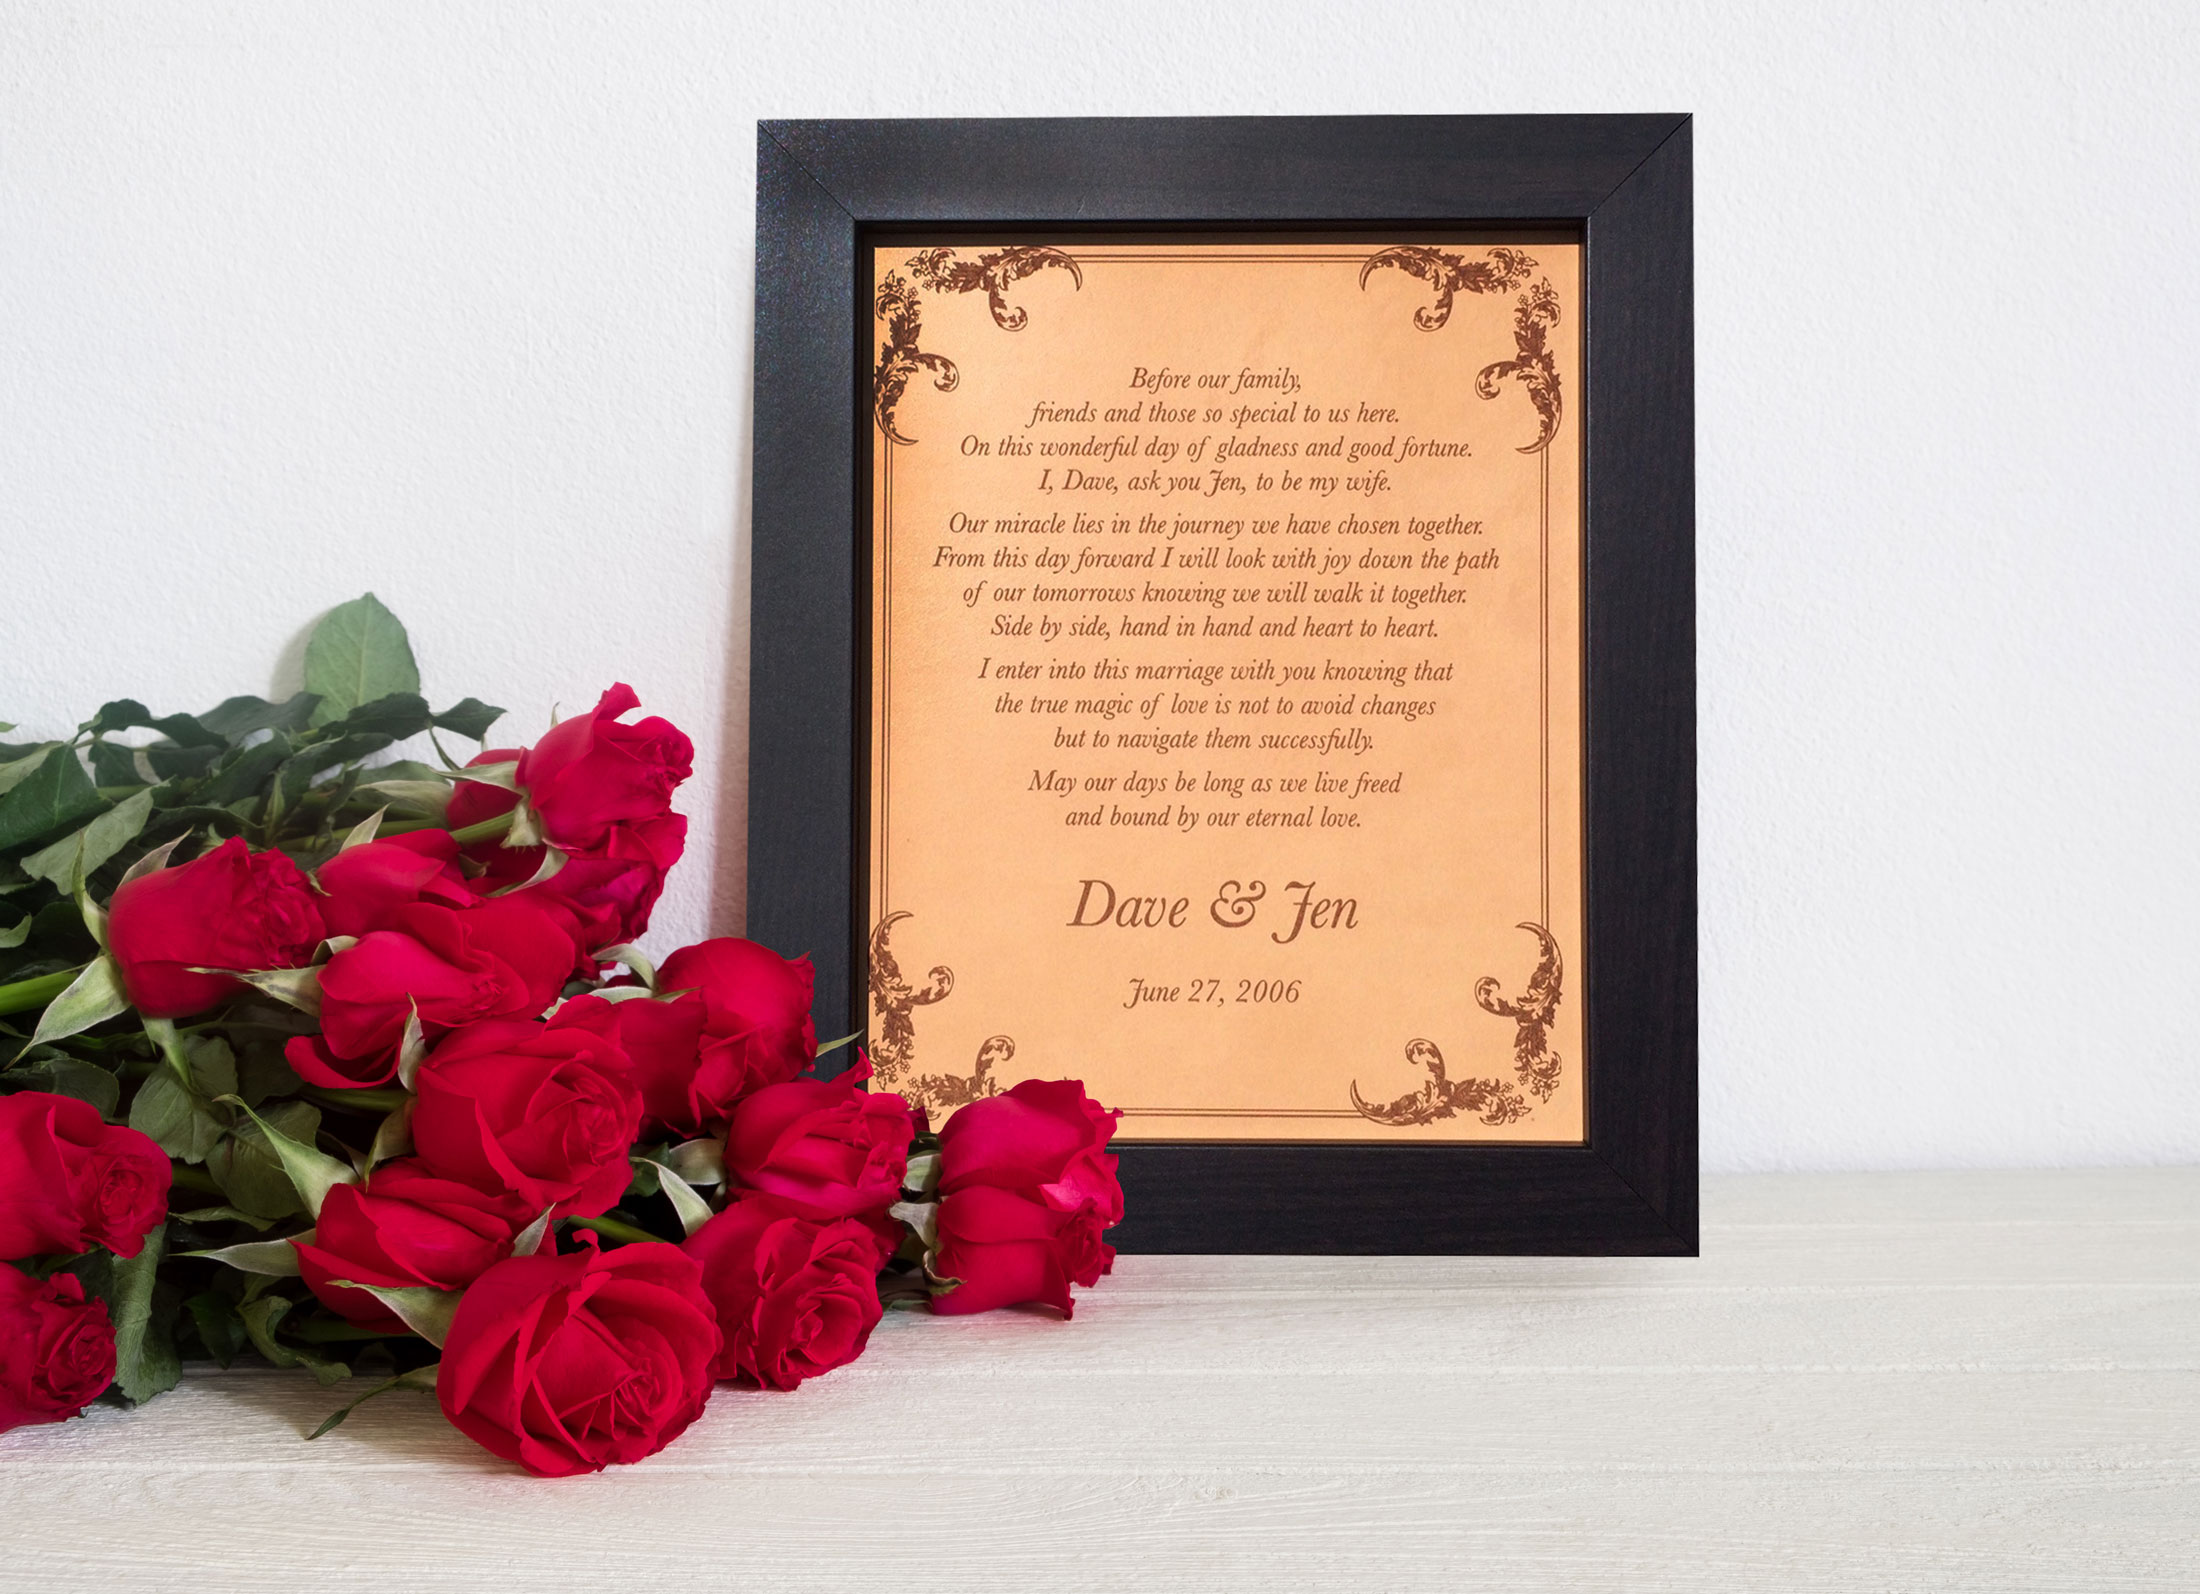 Wedding Vows Engraved On Leather, Leather Anniversary Gift